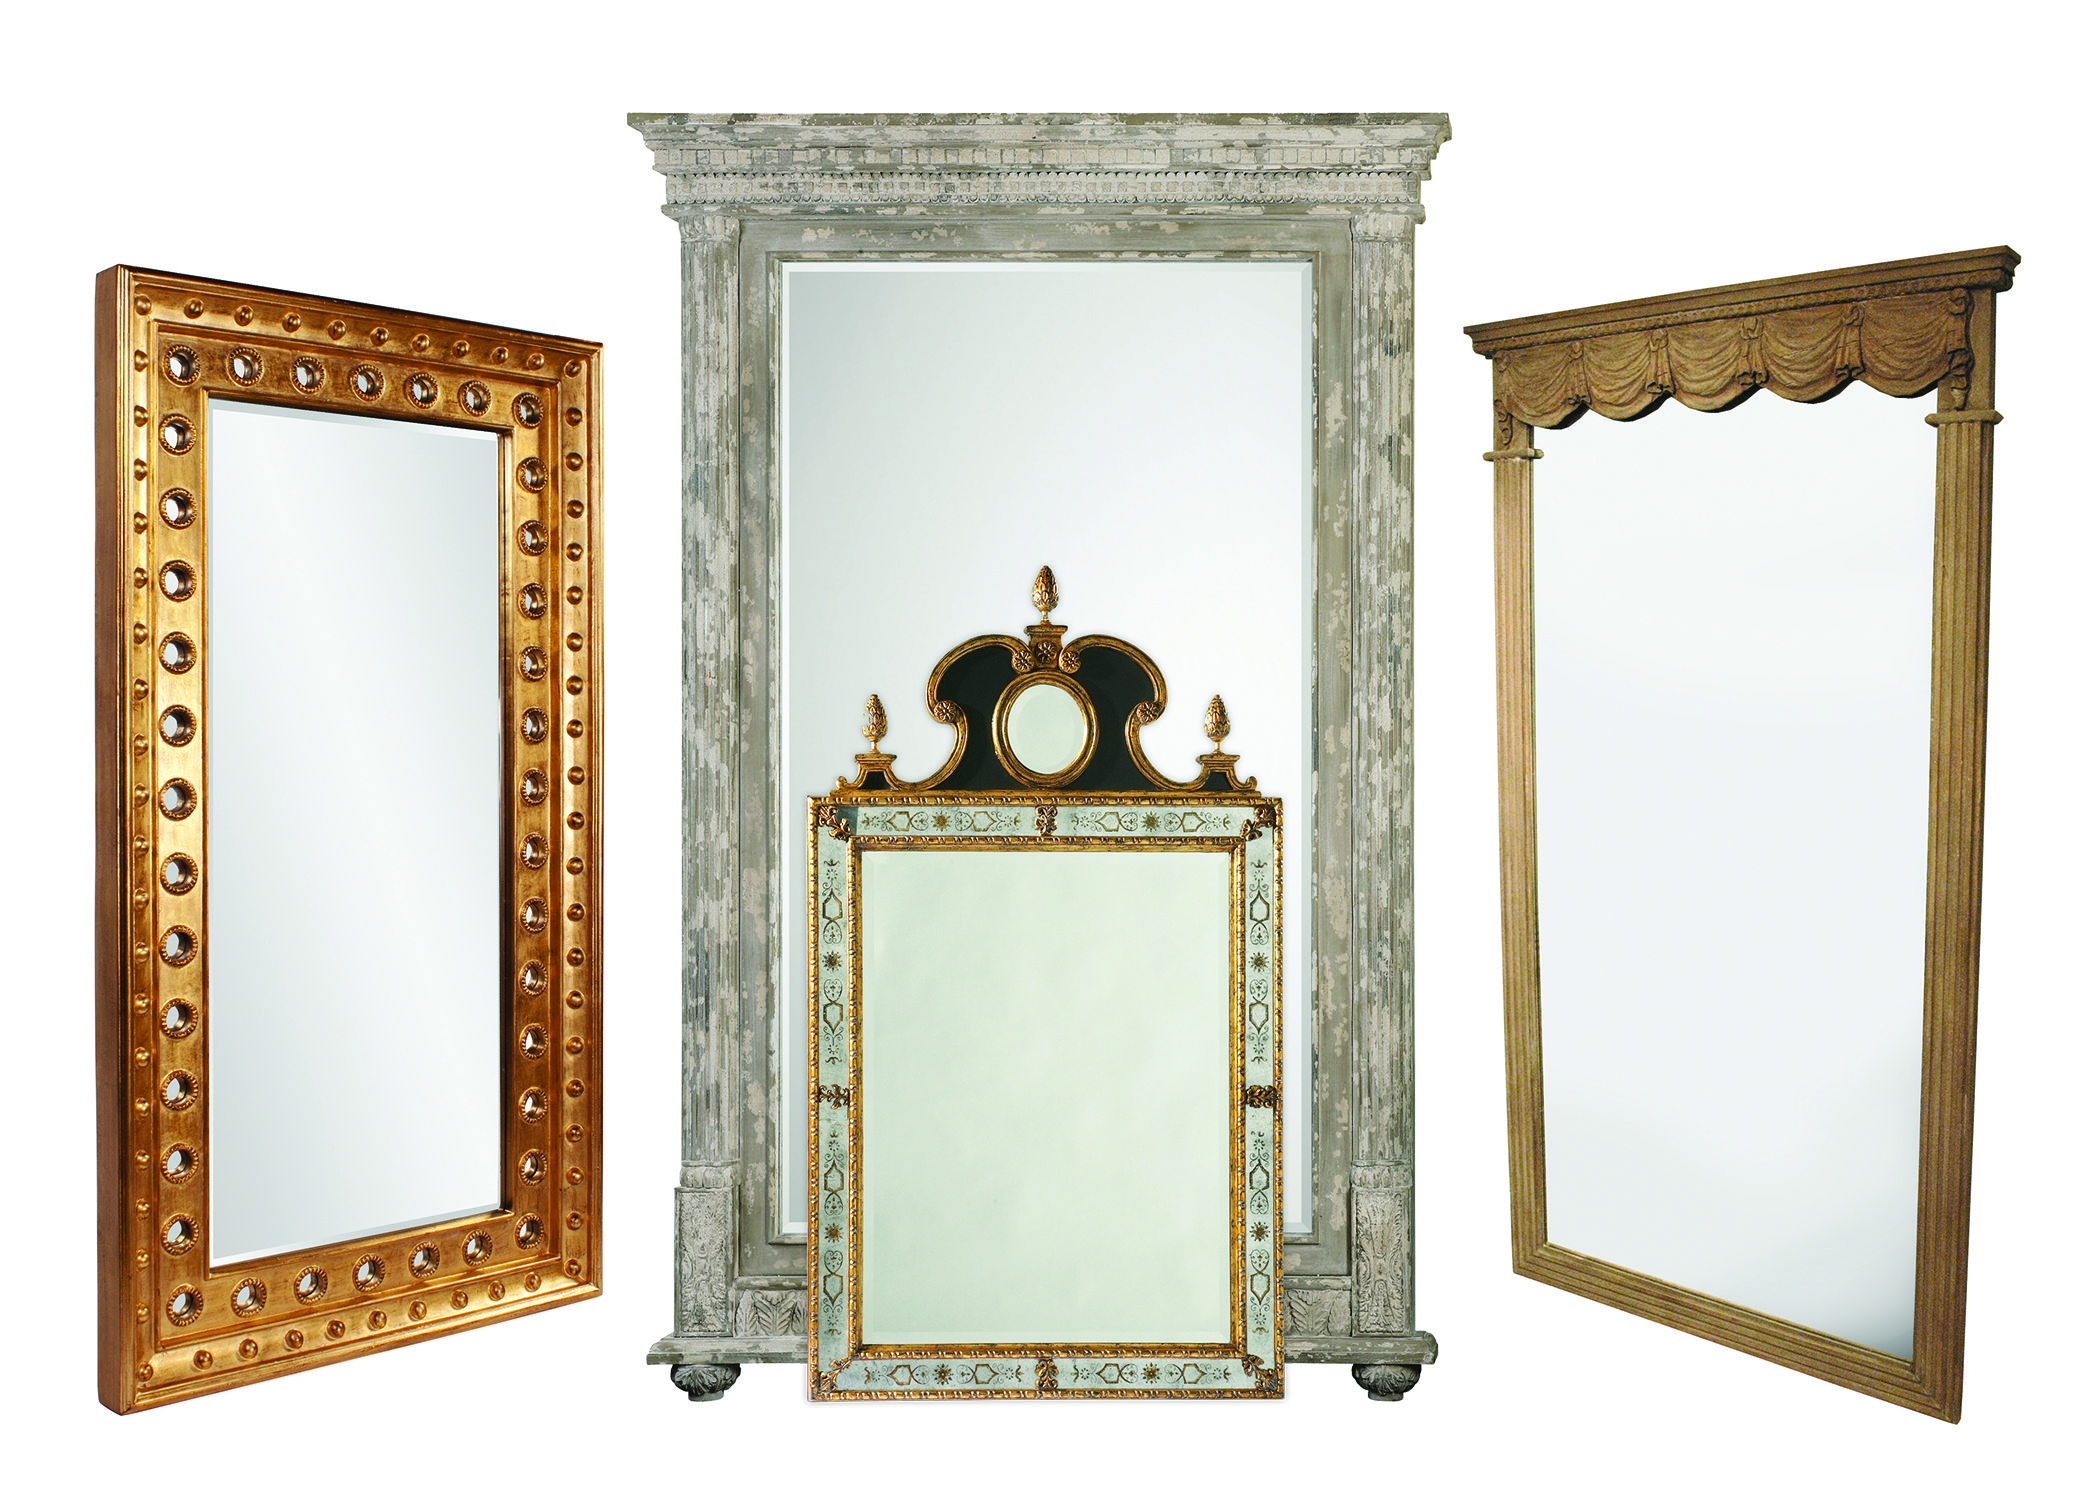 #Mirror, mirror on the wall, on the floor, on the furniture! Donna's Home Furnishings is your destination for the perfect mirror to reflect your personality and style. Visit our showroom to see our fabulous collection of unique mirrors to brighten up your décor.  Which is your favorite?